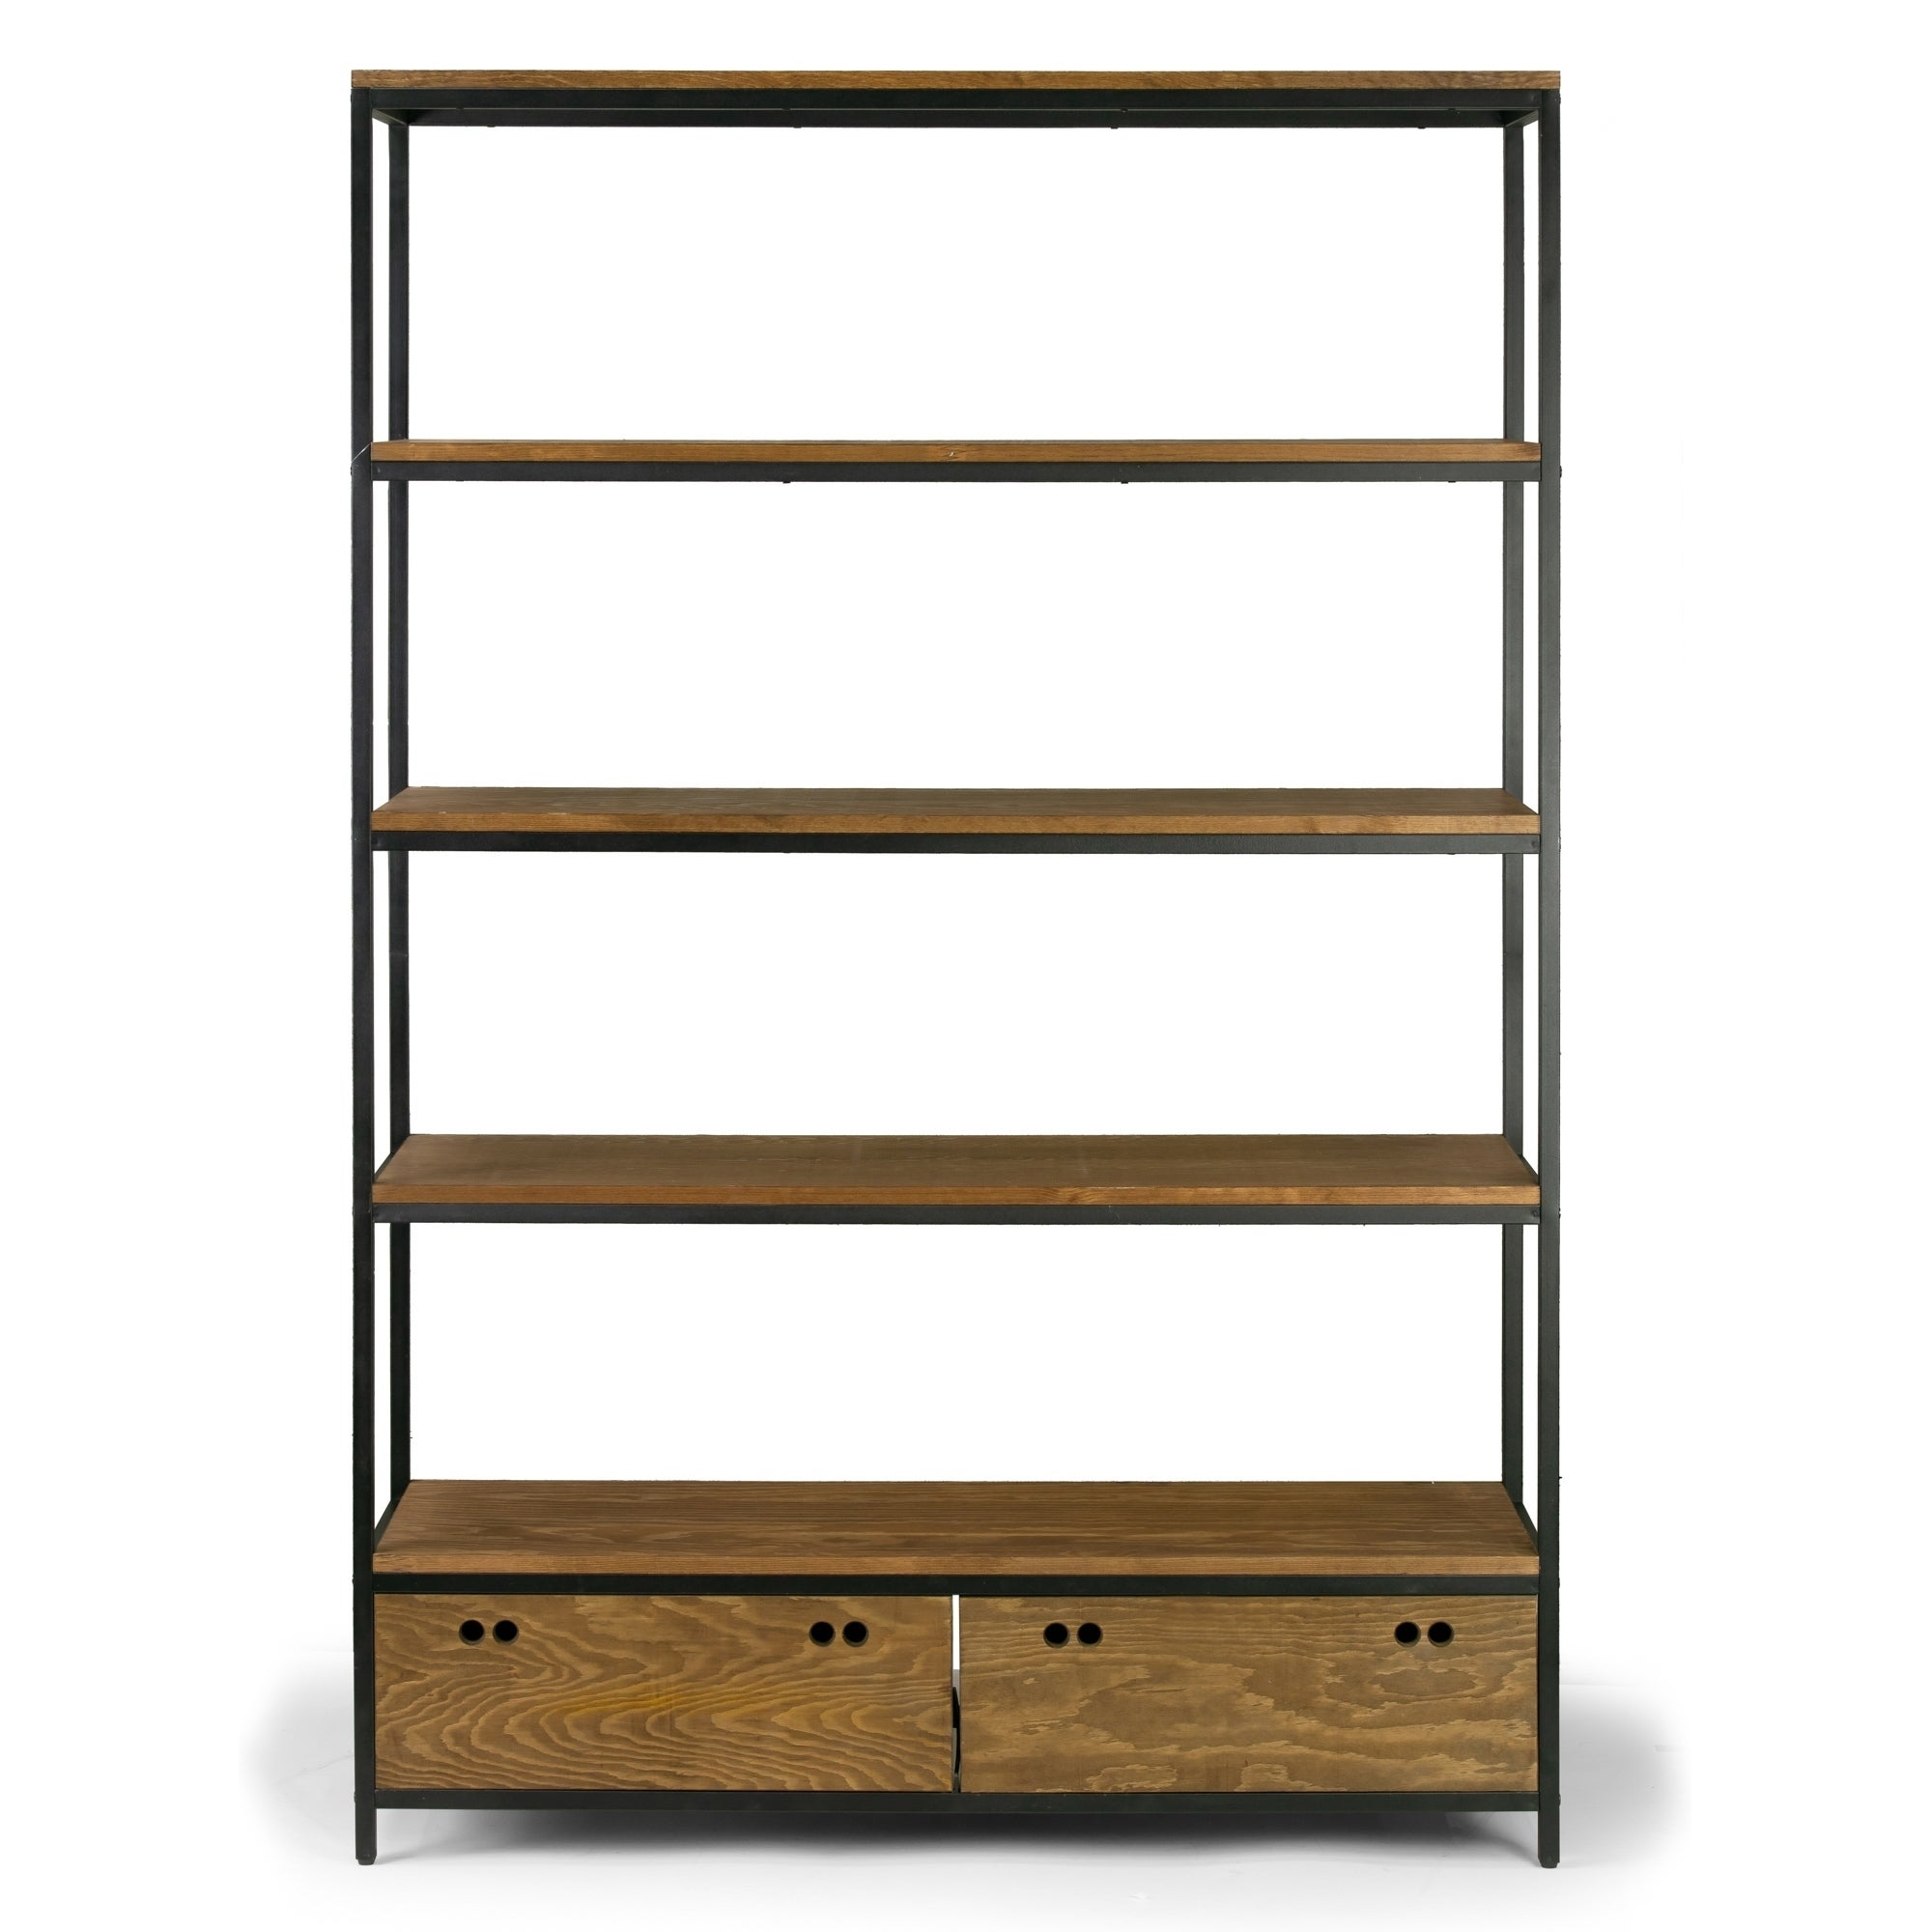 5511e4daa1331 Shop Alta Brown Pine Wood Display Shelf Etagere Bookcase with Drawers -  Free Shipping Today - Overstock - 22122497